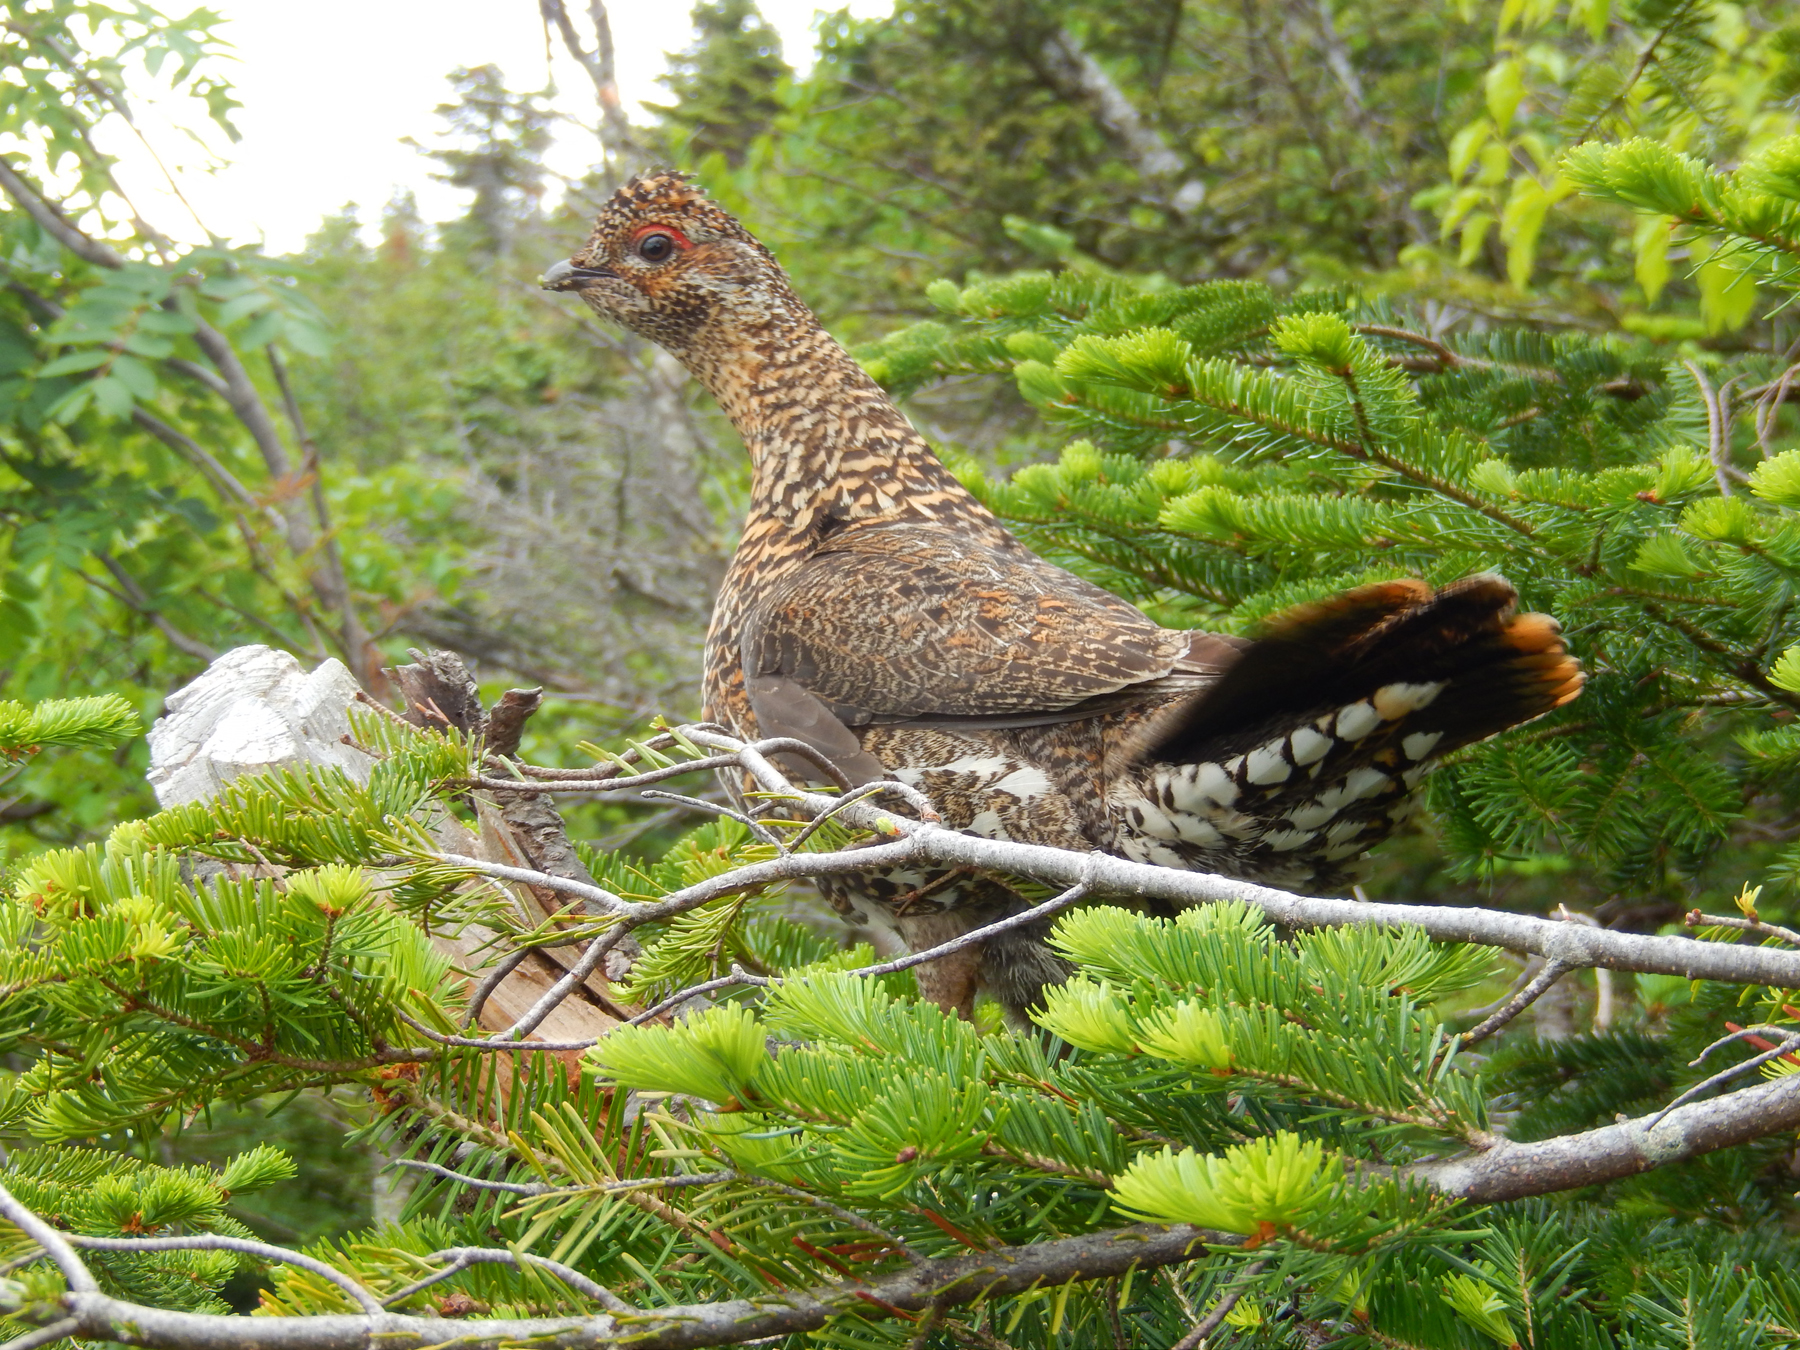 David J. Scheuring of Dublin, N.H., got this shot of a female Spruce Grouse while hiking at Mt. Madison in the White Mountains of New Hampshire.